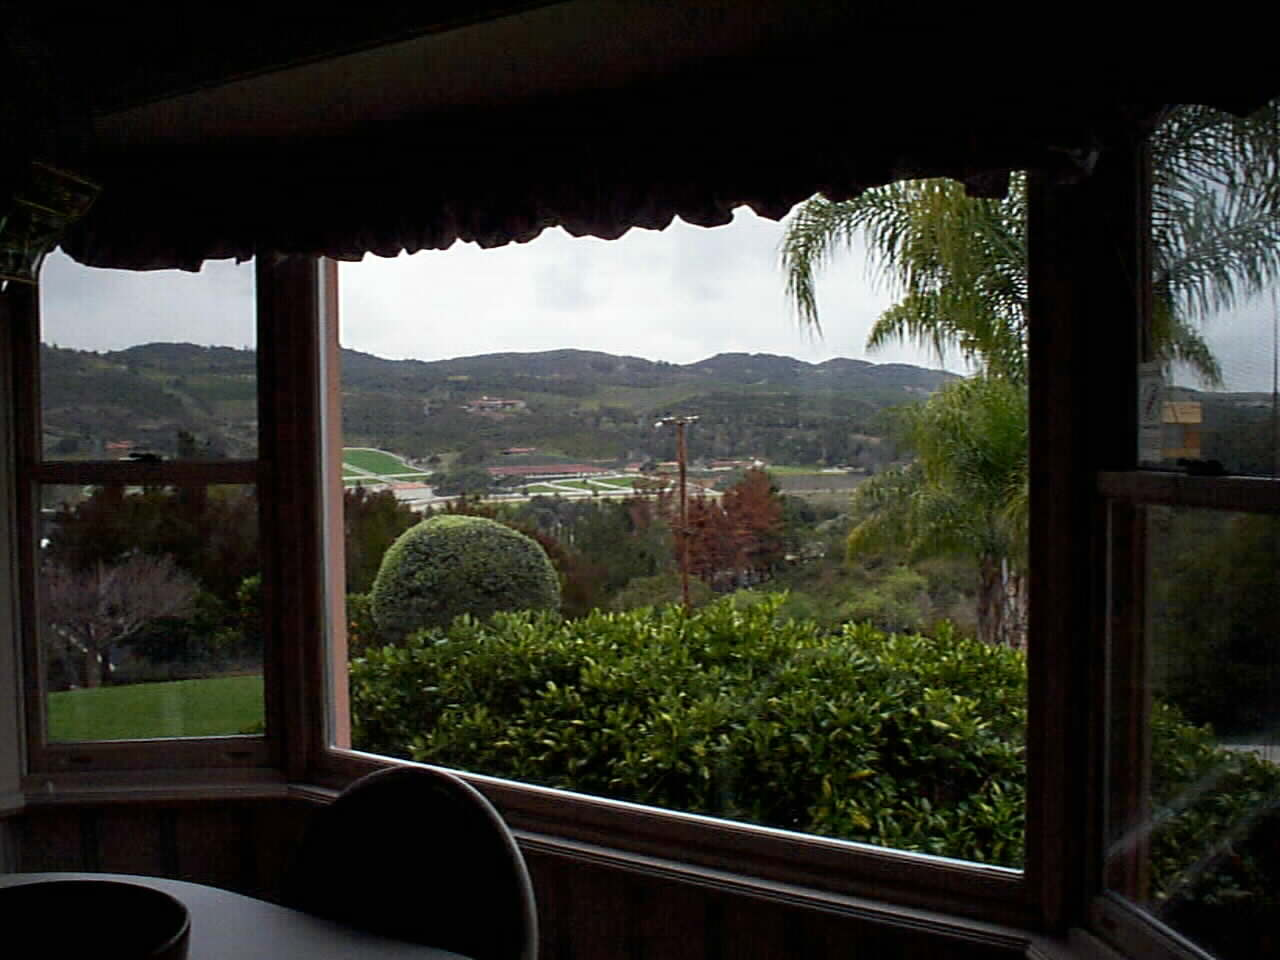 Breakfast nook view of Bonsall's Brookside Farms West